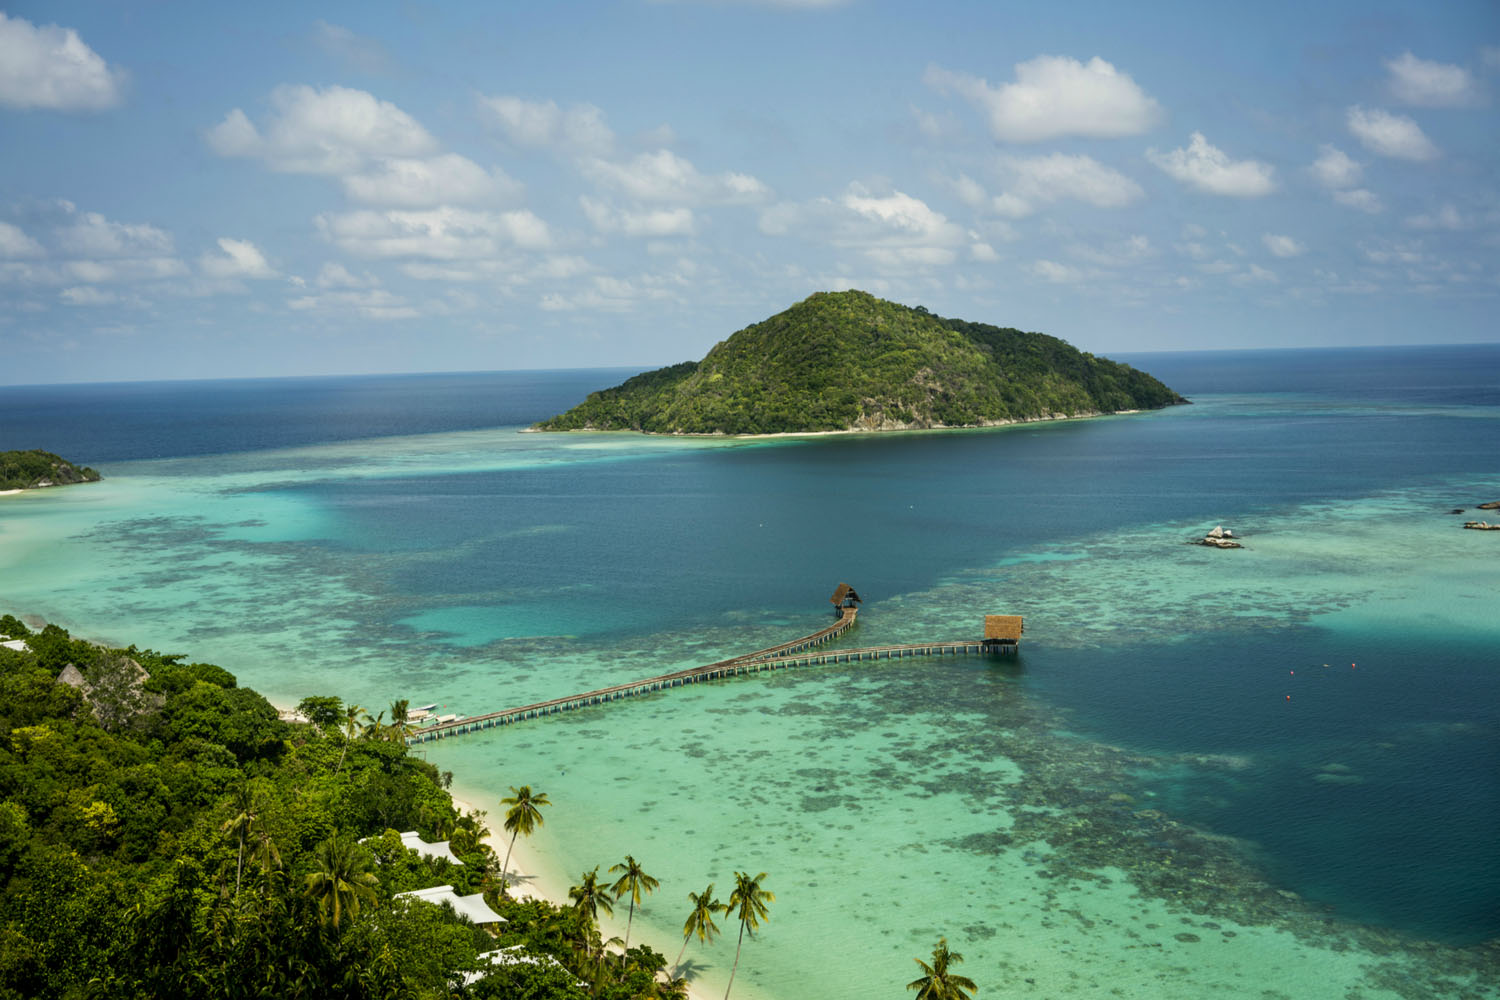 Bawah Prive Island is the ultimate new weekend escape from Singapore. Image courtesy of Bawah Private Island